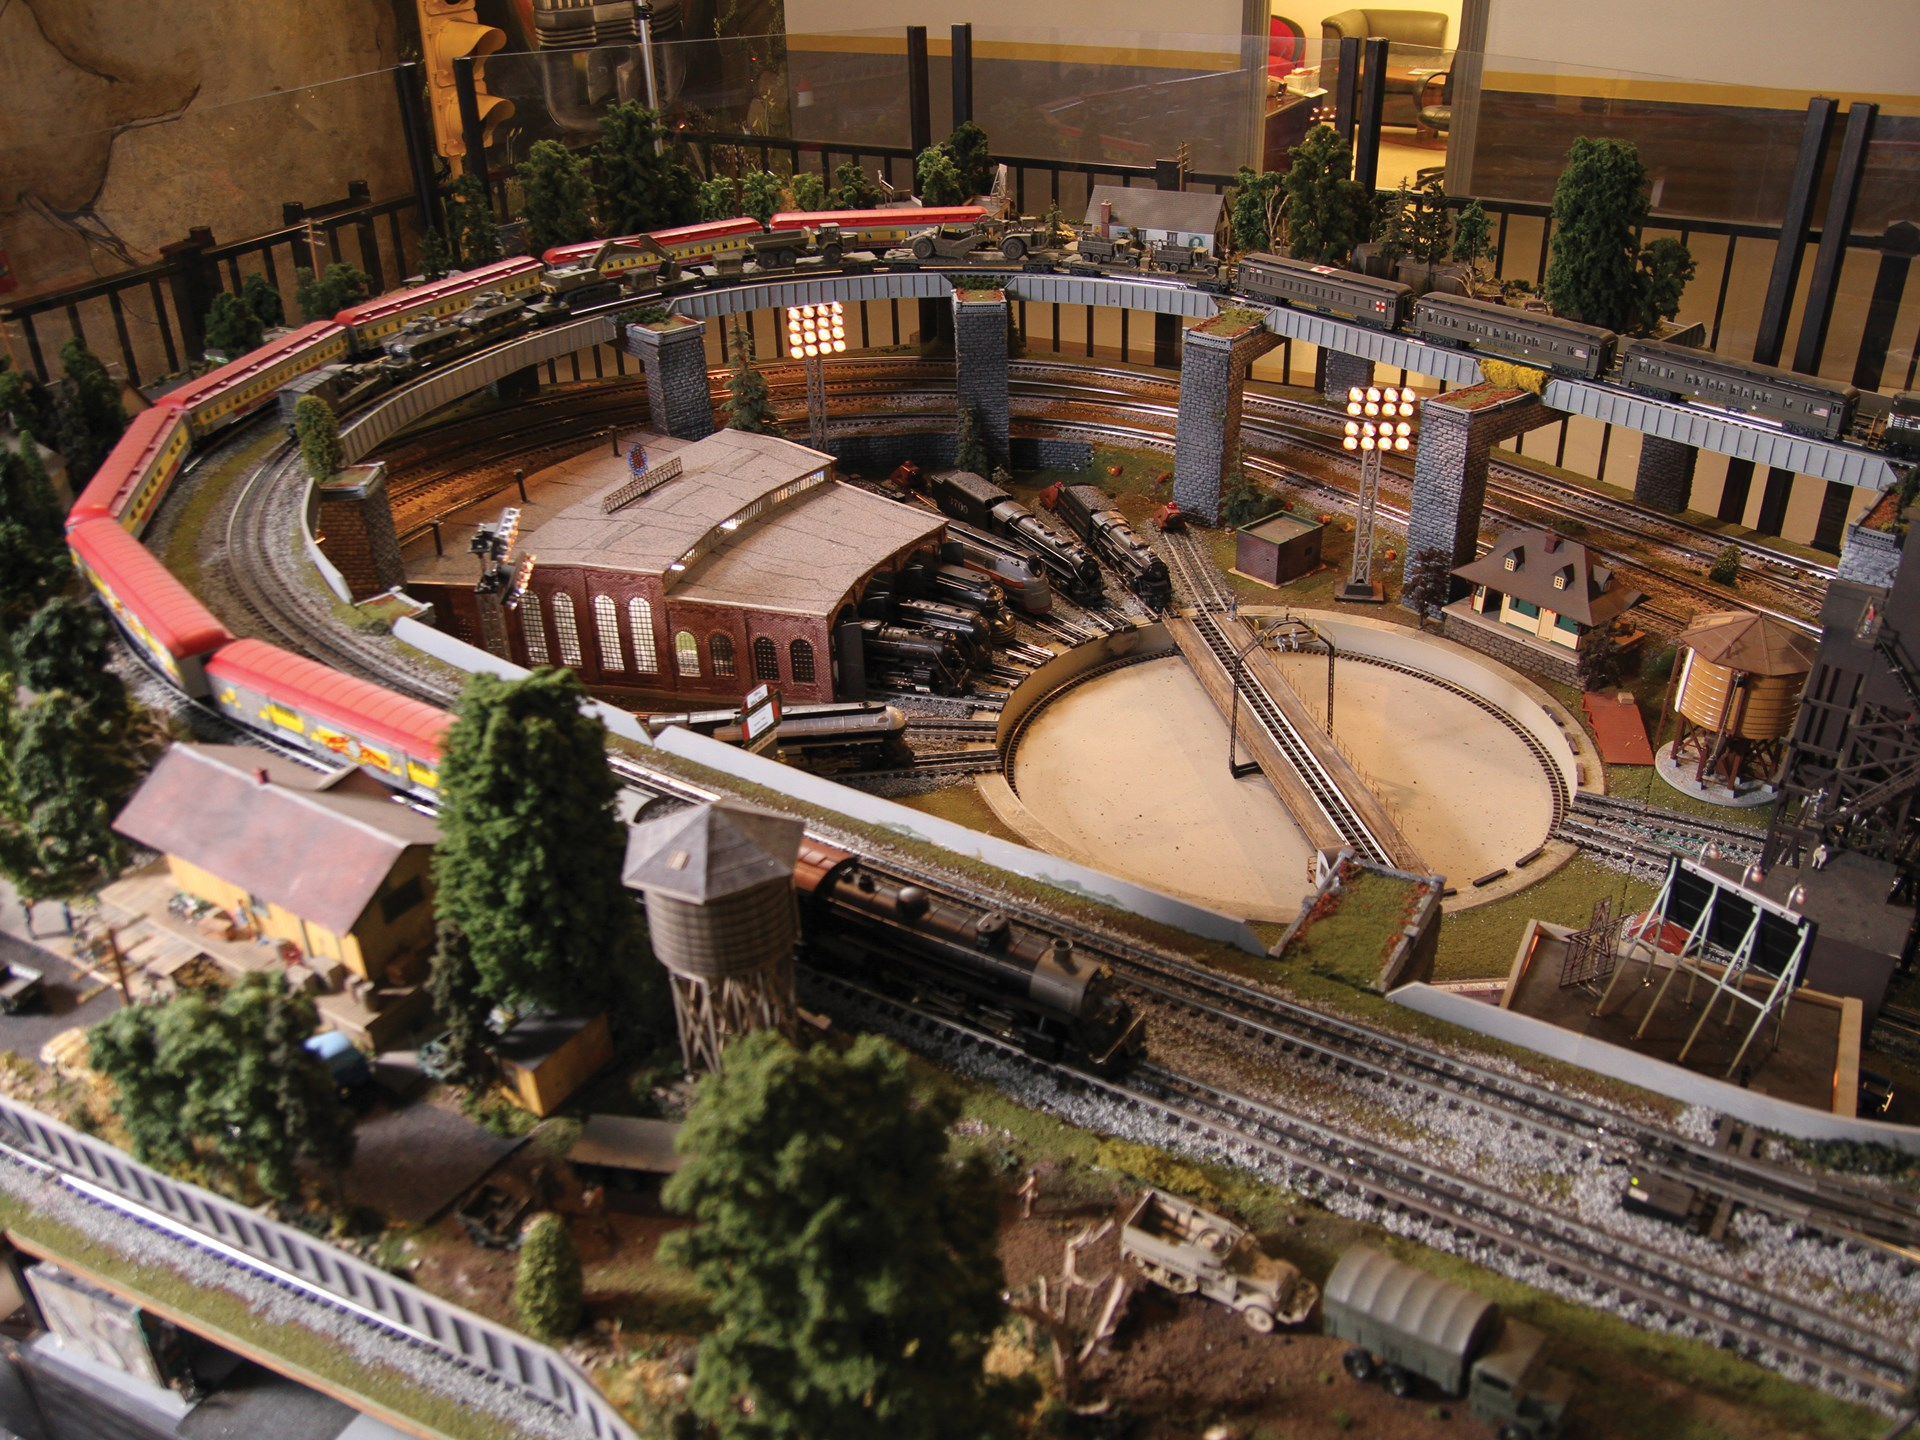 RM Sotheby's - Large-Scale Lionel Train Layout | The John Staluppi